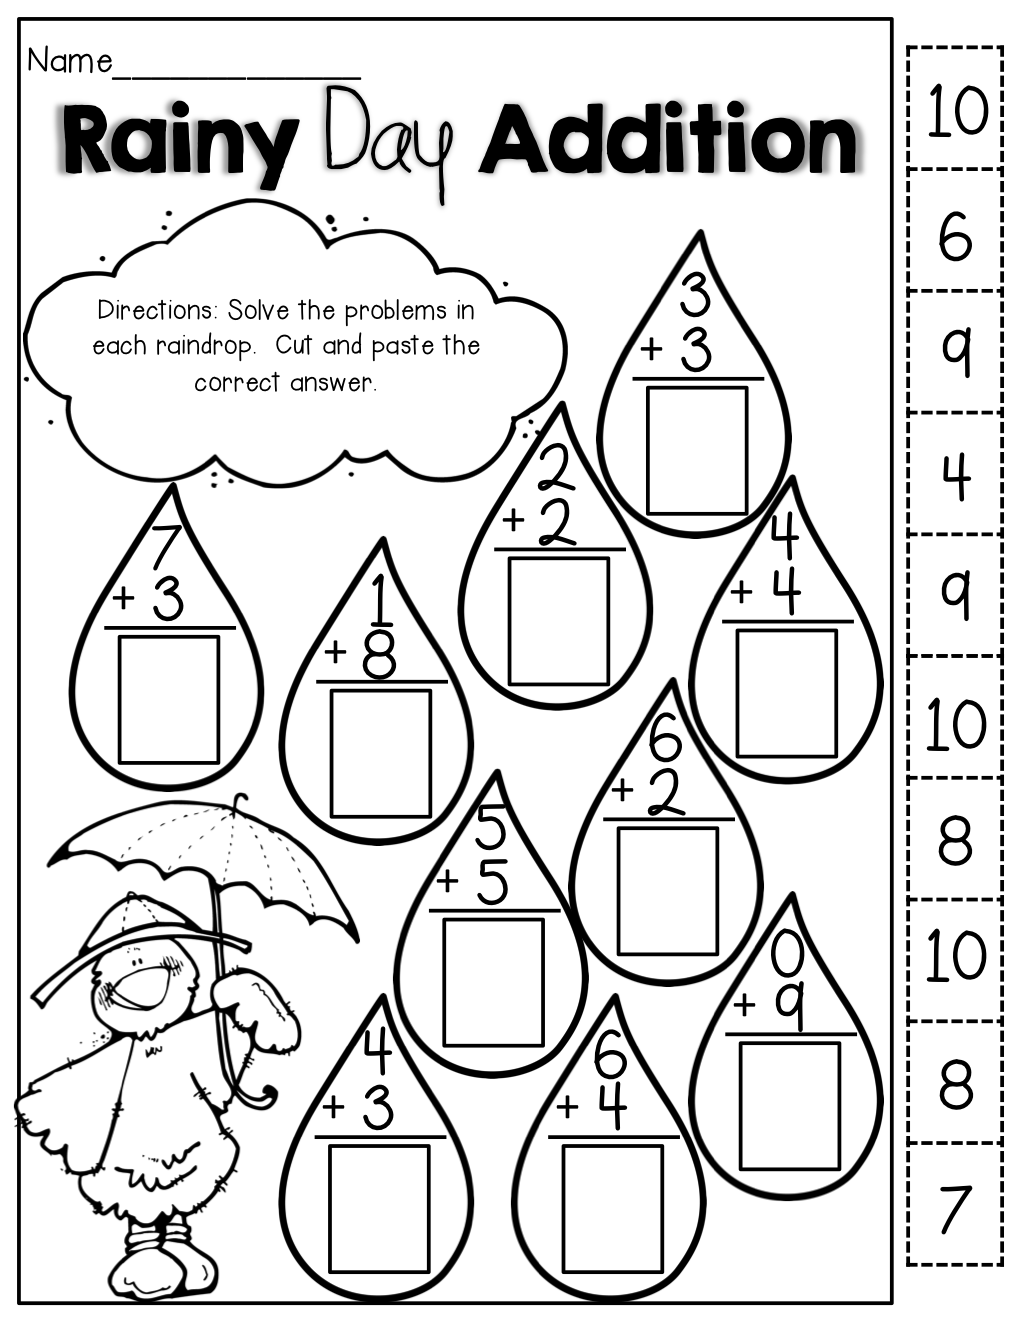 Cut And Paste Worksheets For 2nd Grade : Cut and paste addition worksheets for kindergarten